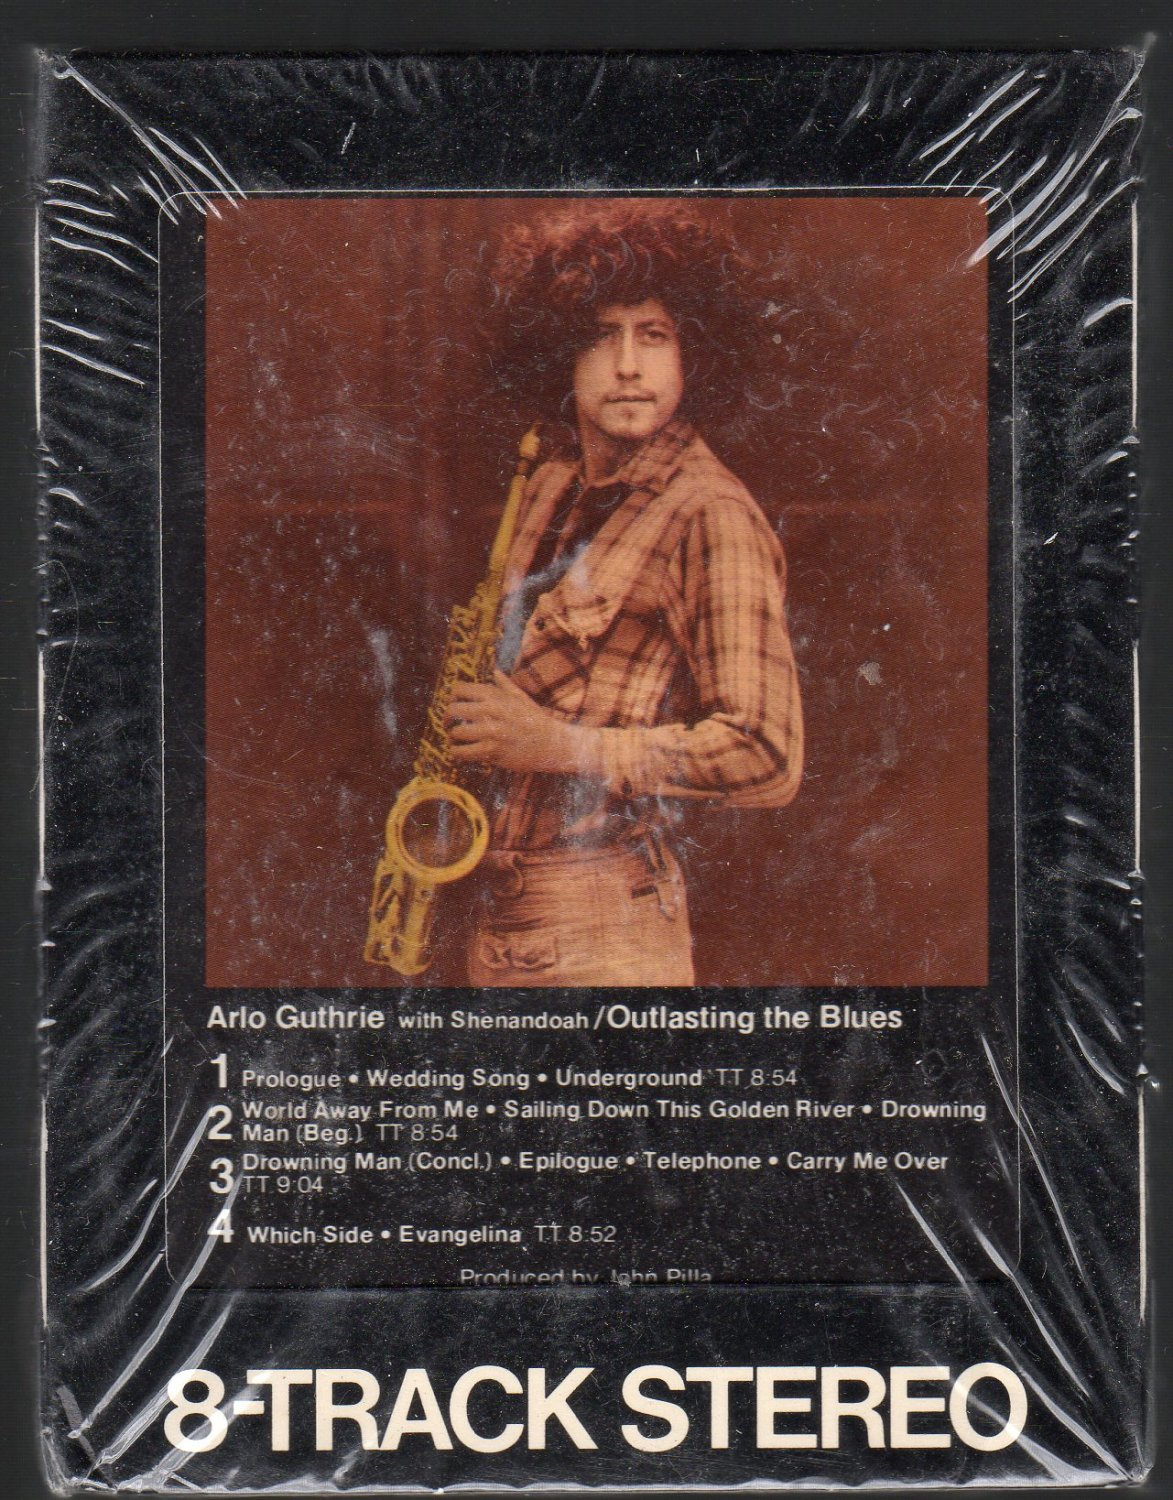 Arlo Guthrie - with Shenandoah Outlasting The Blues Sealed 8-track tape